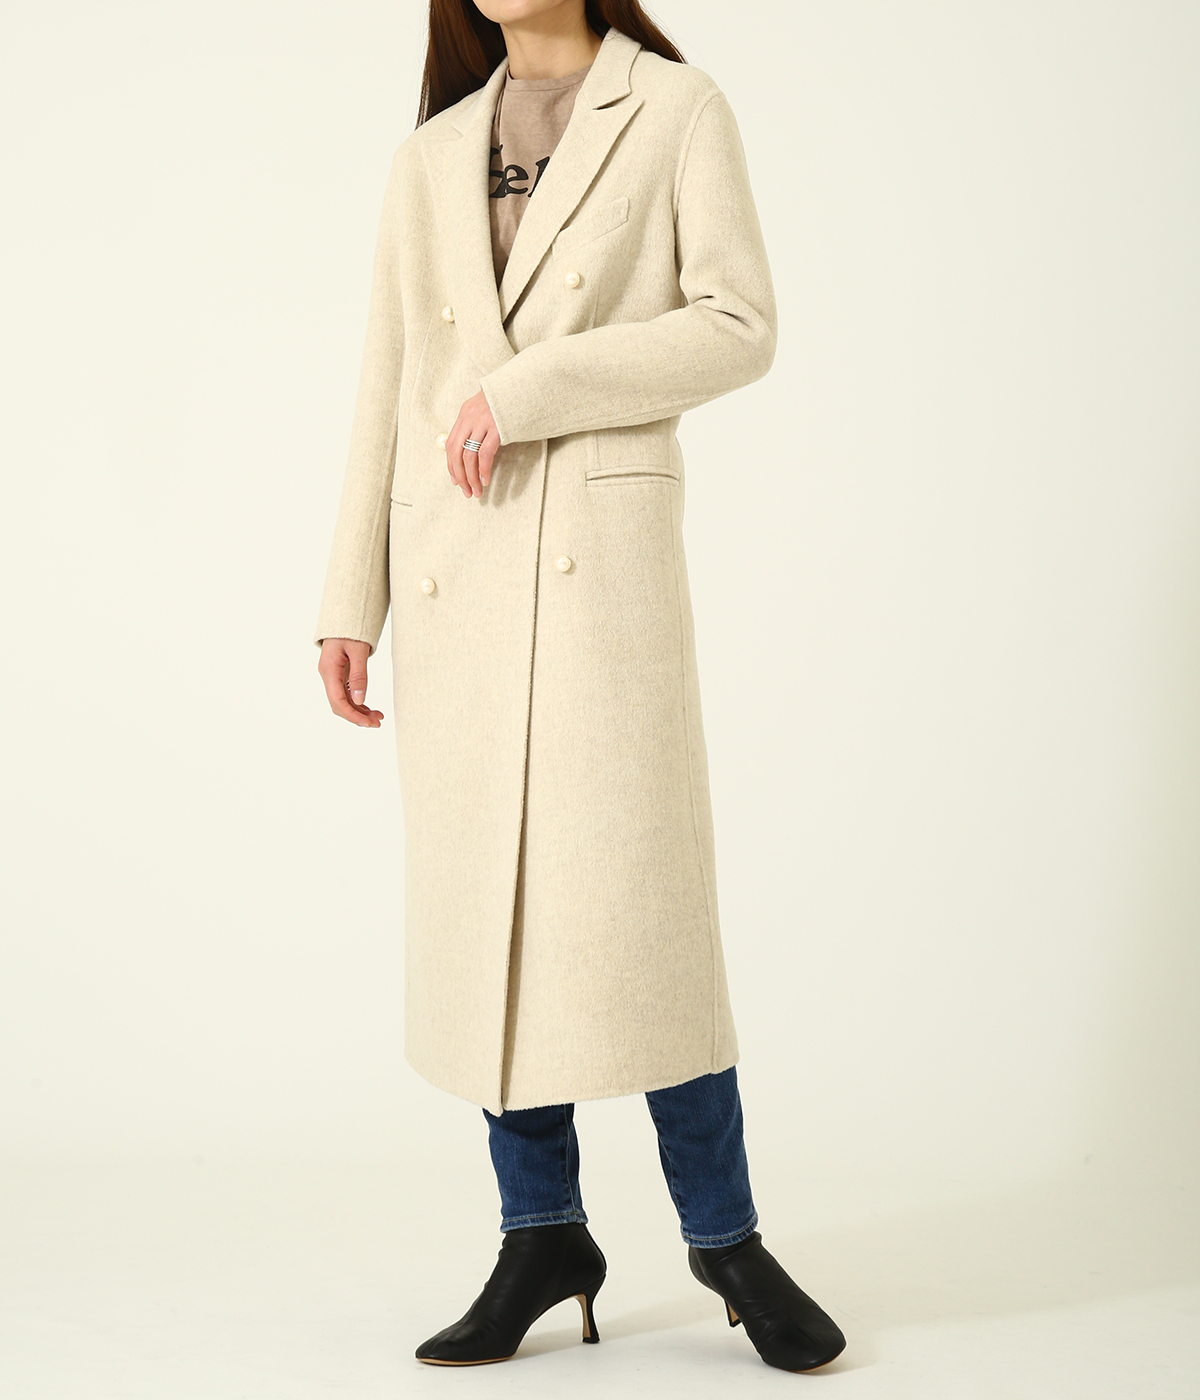 PEARL CHESTER COAT